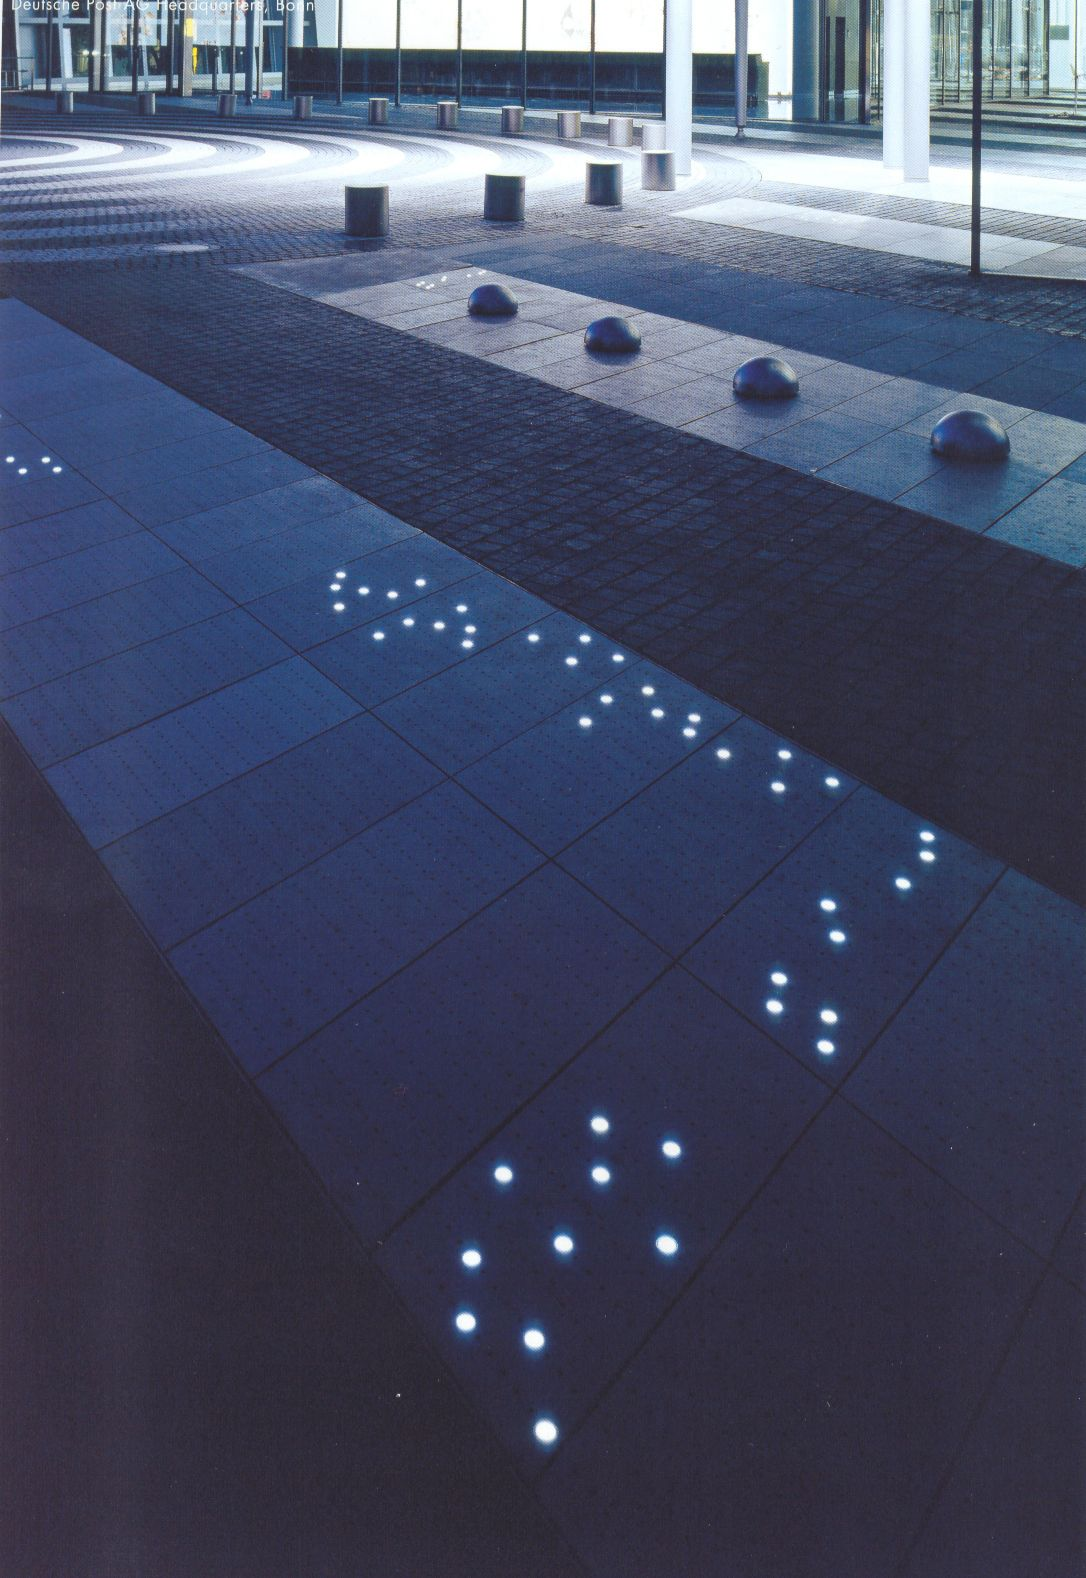 Eclairage Exterieur Urbain Plaza And Courtyard Lighting Lark Pinterest Design